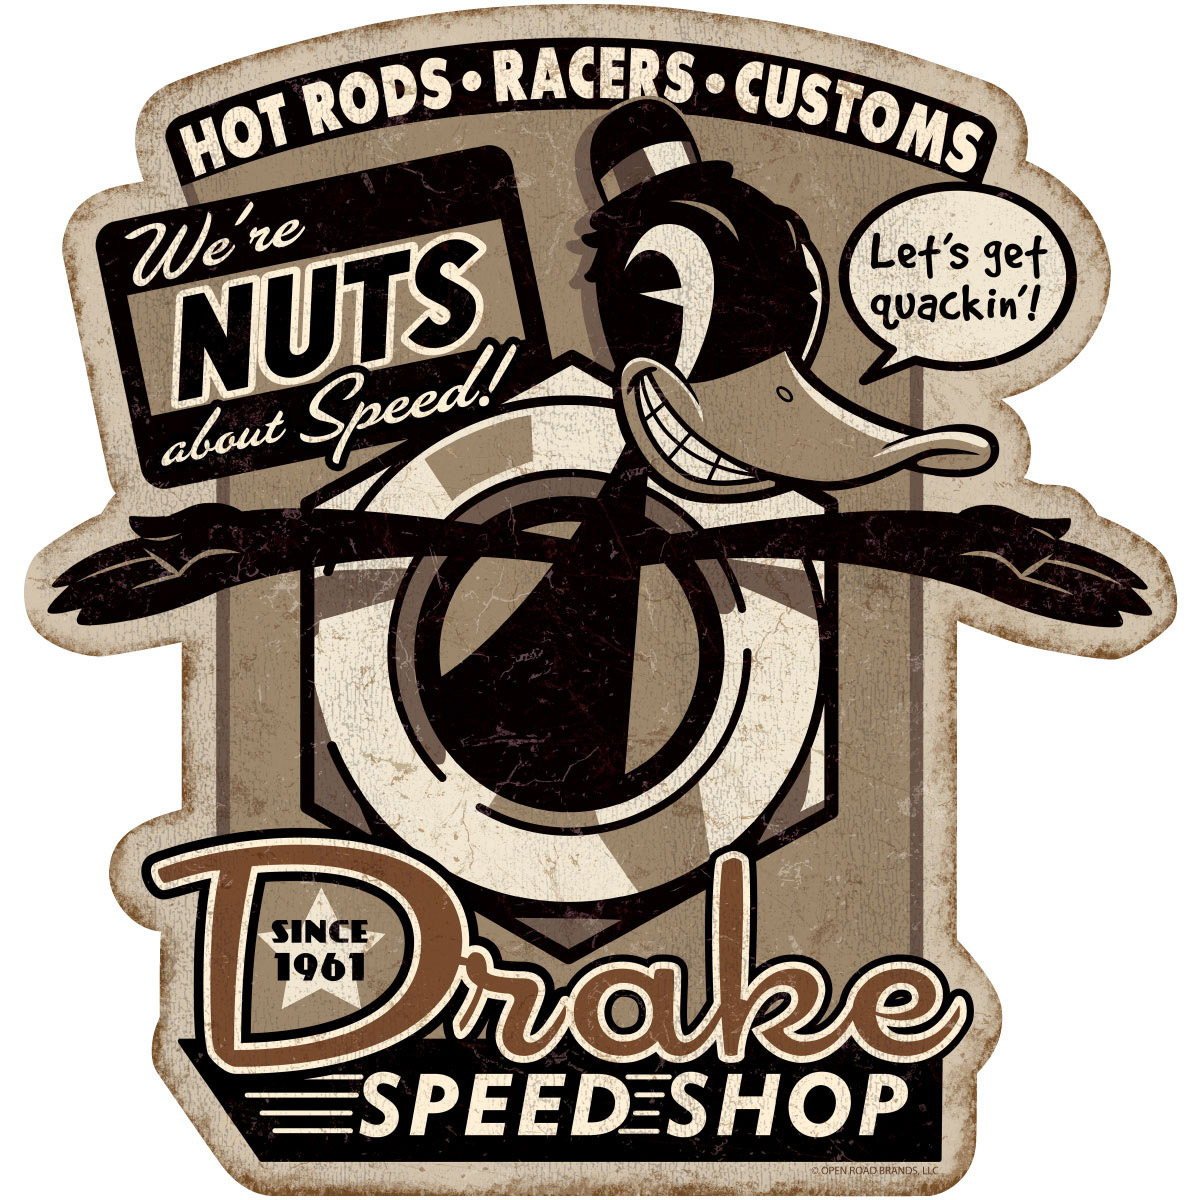 sc 1 st  Retro Planet & Drake Speed Shop Duck Nut Wall Decal | Garage Decor | RetroPlanet.com